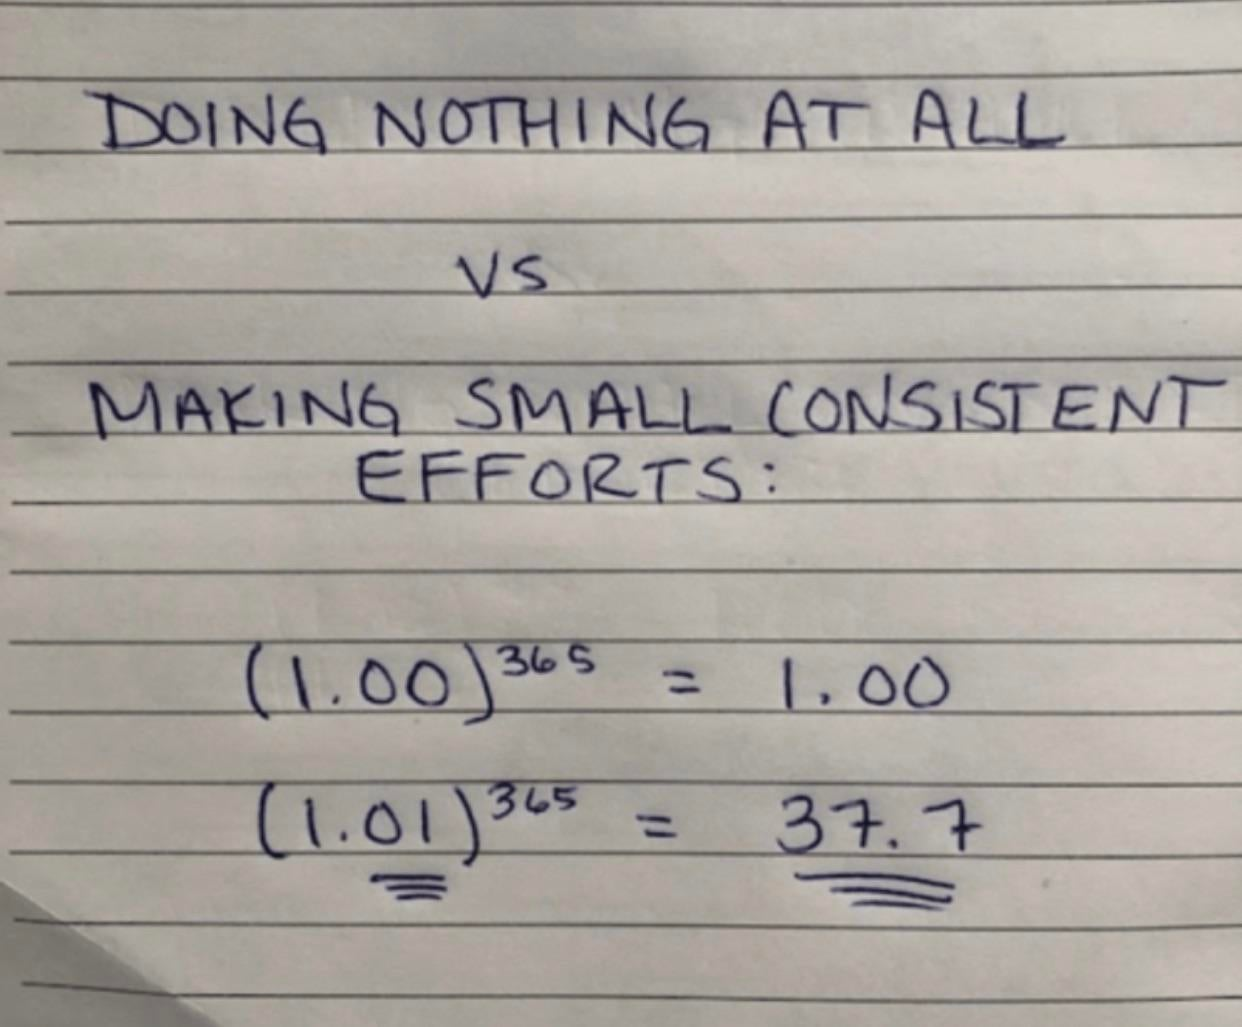 [Image] Putting forth 1% extra effort or work each day toward a goal or habit can make a significant difference over time.